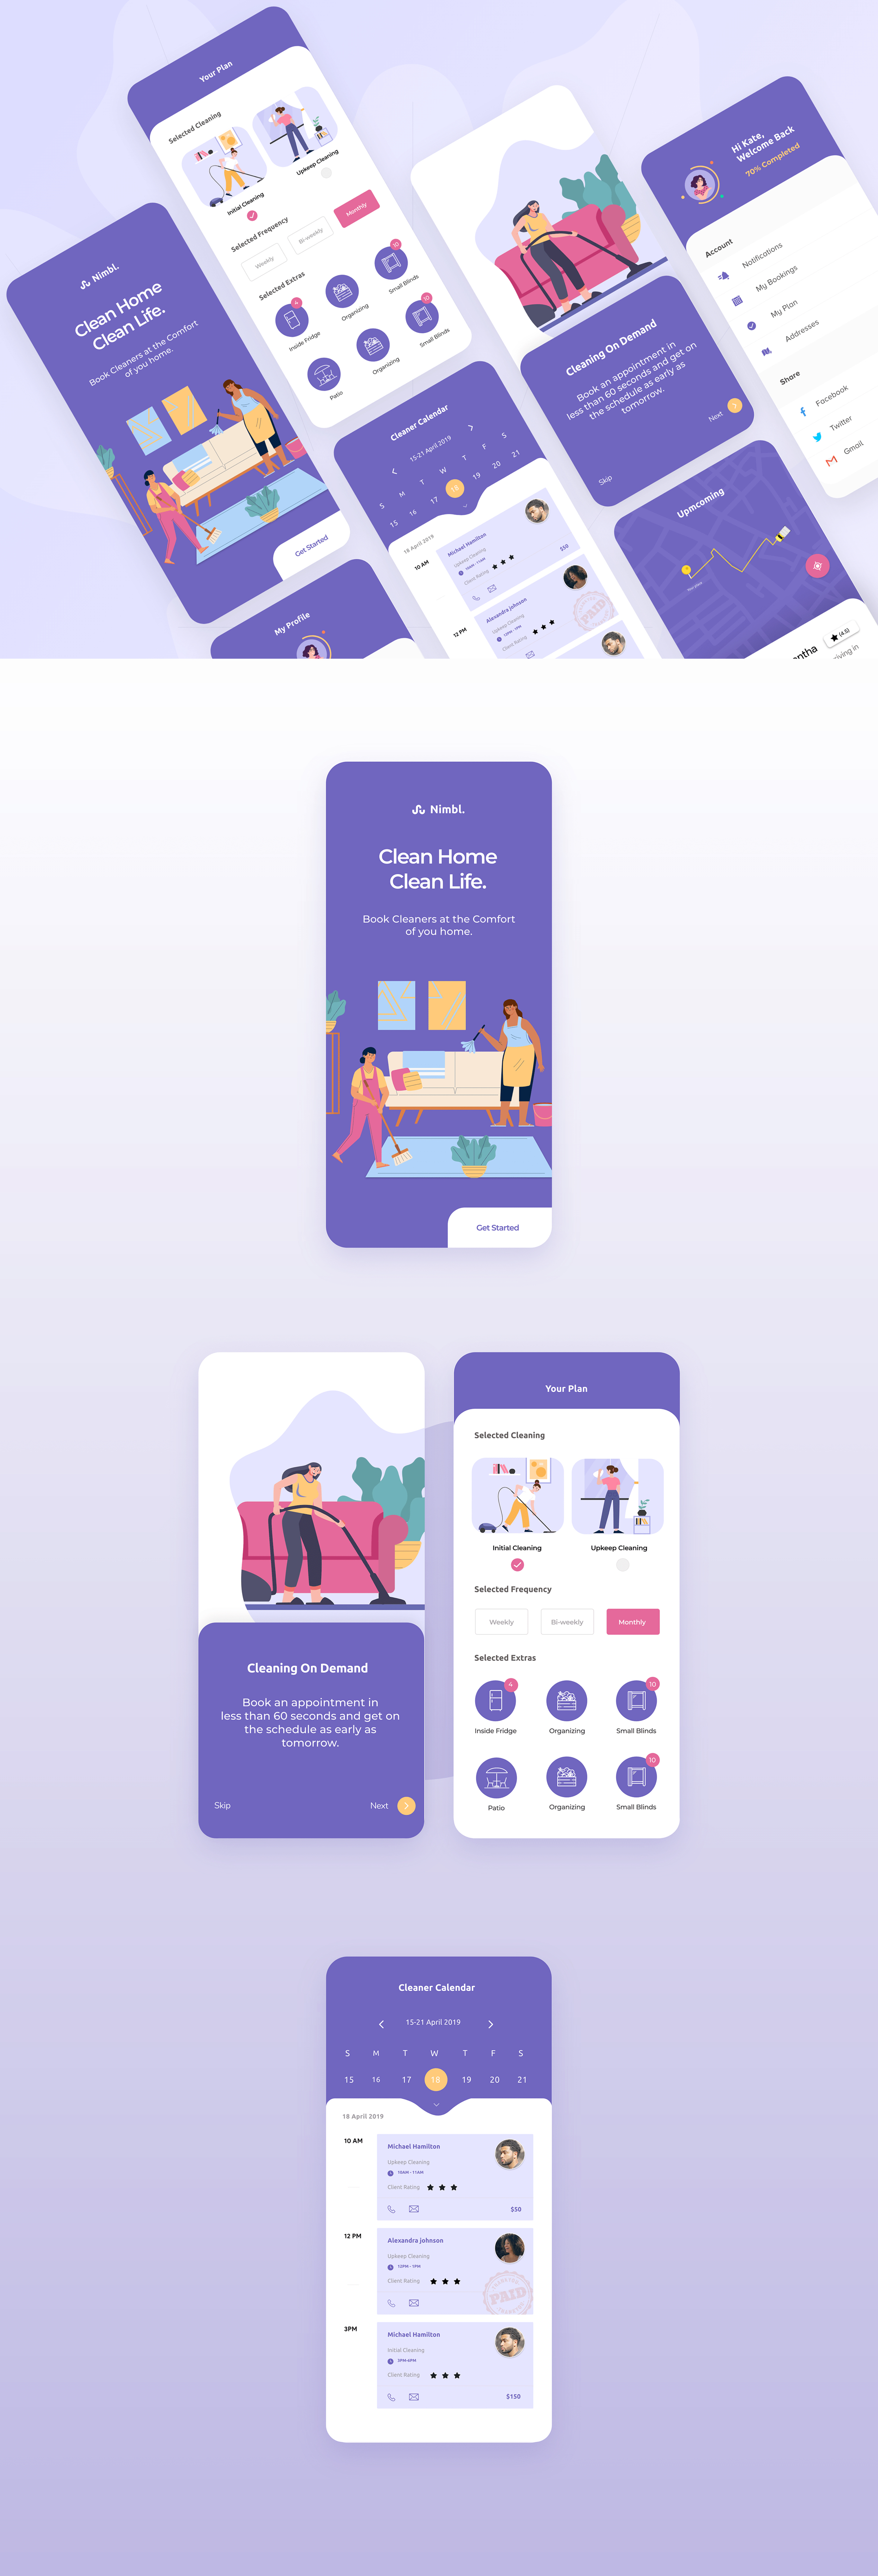 Home Cleaning App for Adobe XD - Book cleanings at your convenience, chose frequency and customise extras. The app also has a version for the cleaners where they can manage their bookings and watch their calendar closely. Minimal and clean app design, 6+ screens for you to get started.